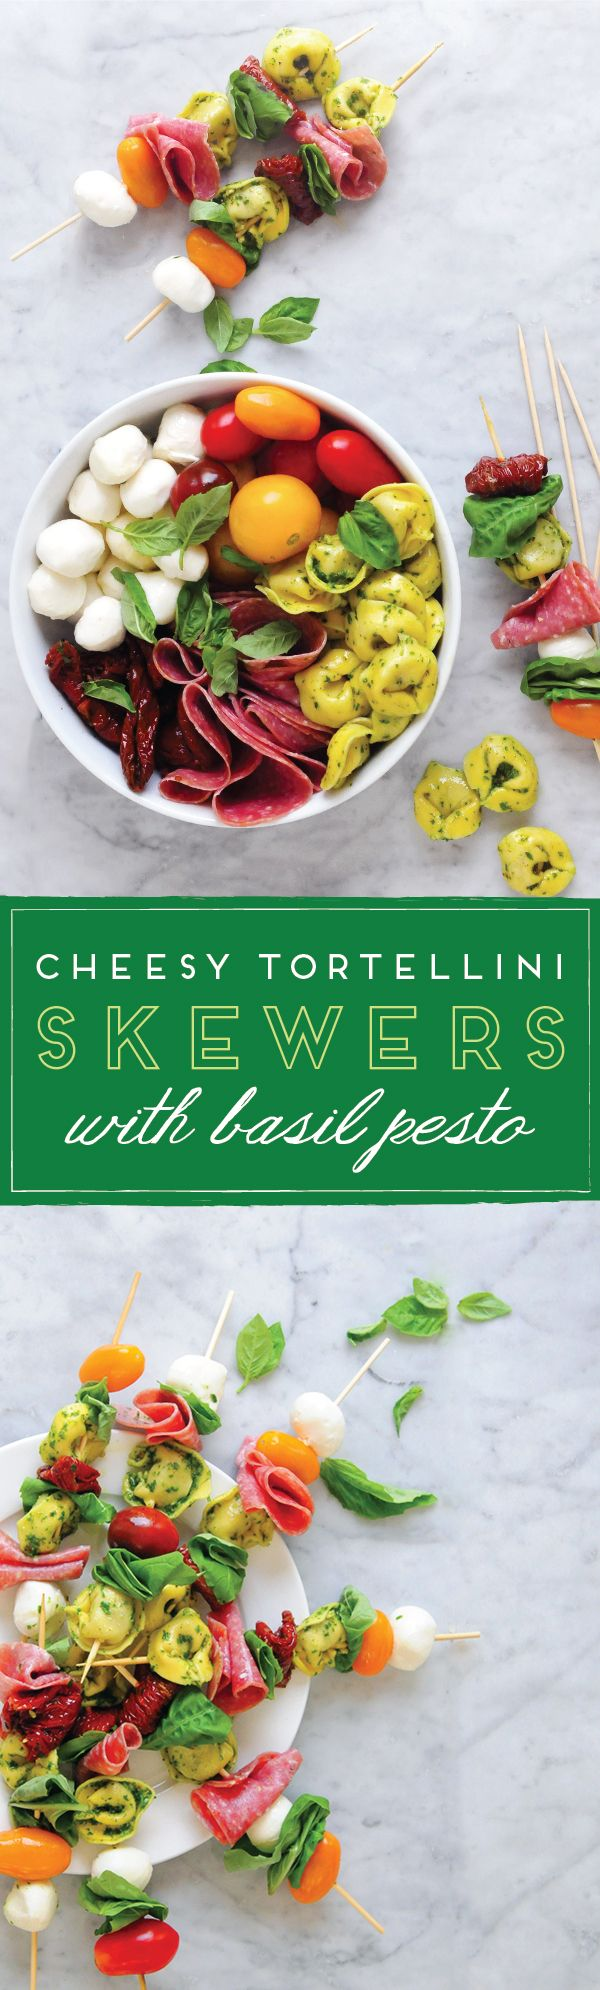 Italian Tortellini Skewers with Pesto #appetizer